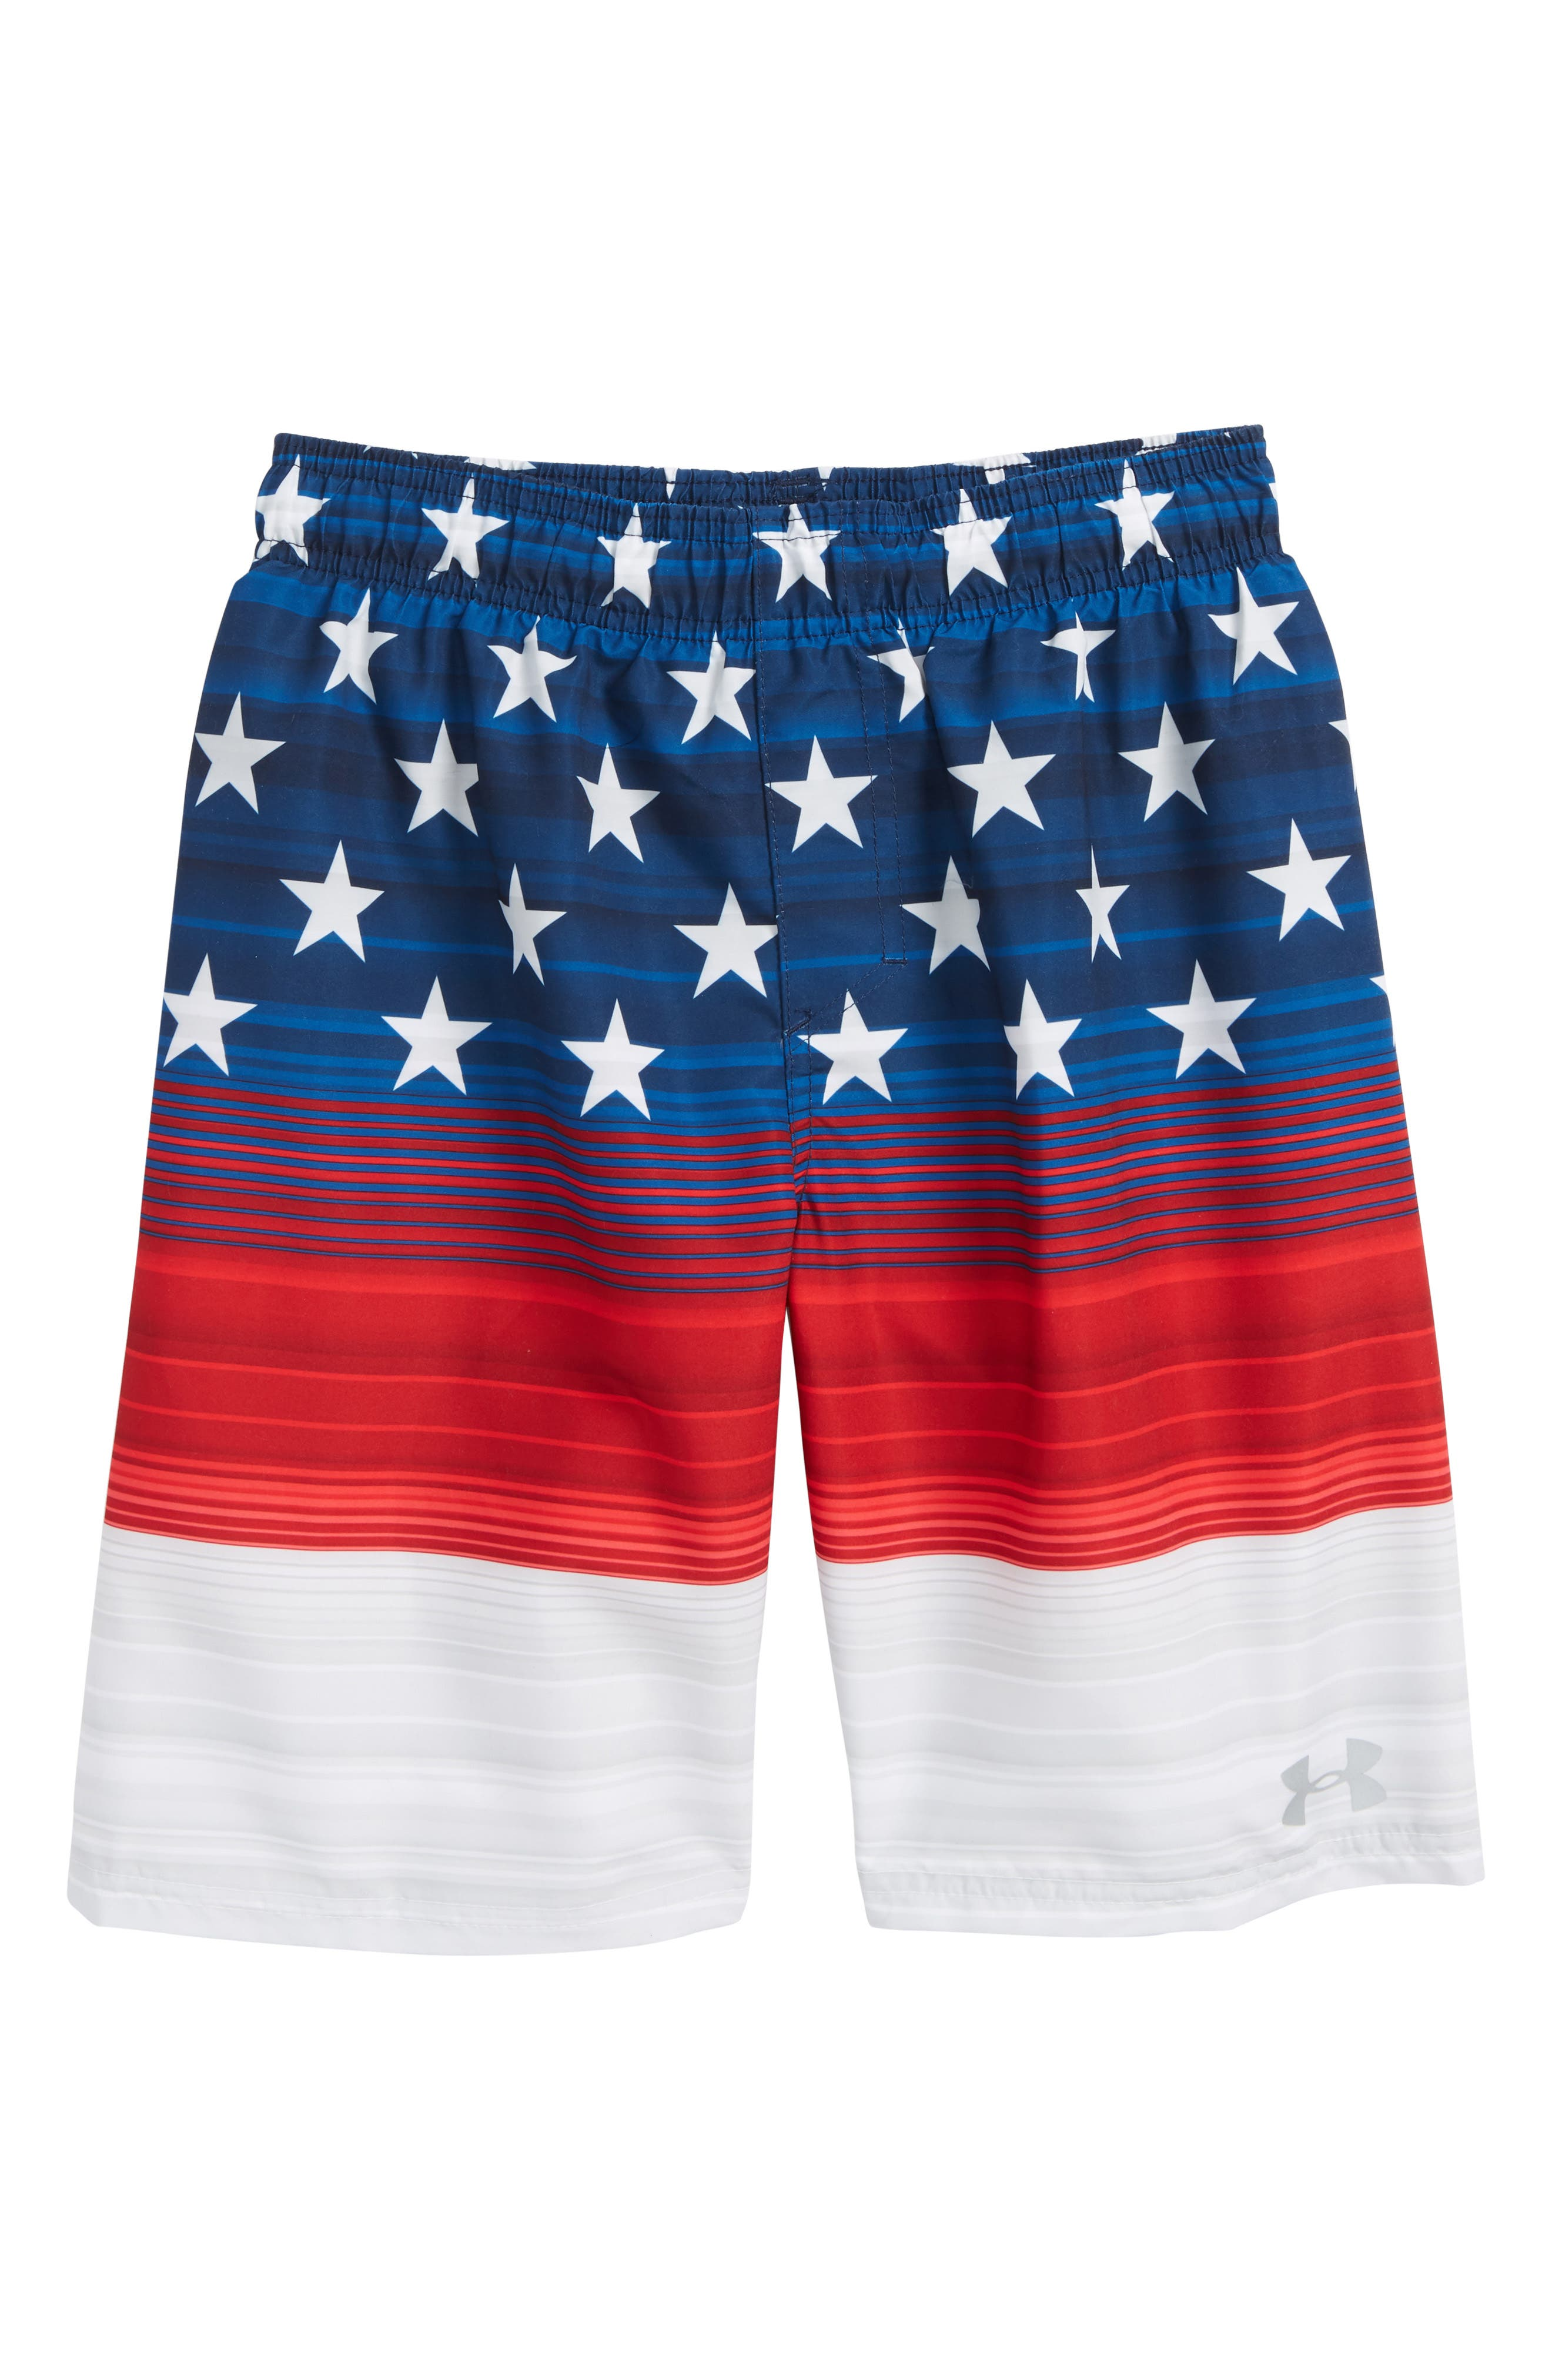 UNDER ARMOUR Americana Stripe Volley Shorts, Main, color, 600